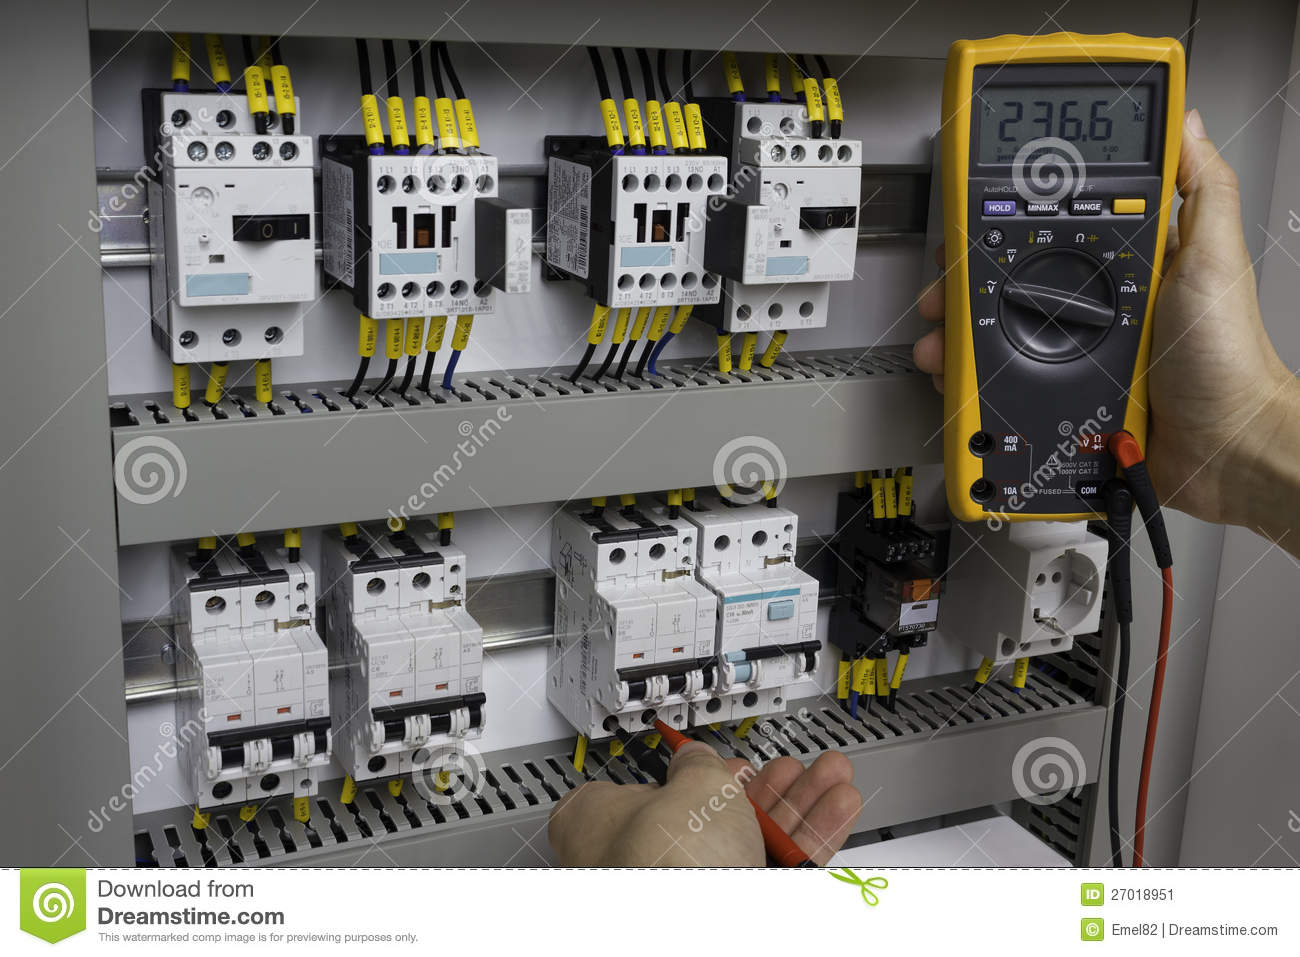 Electrician at work stock image. Image of measuring, control - 27018951